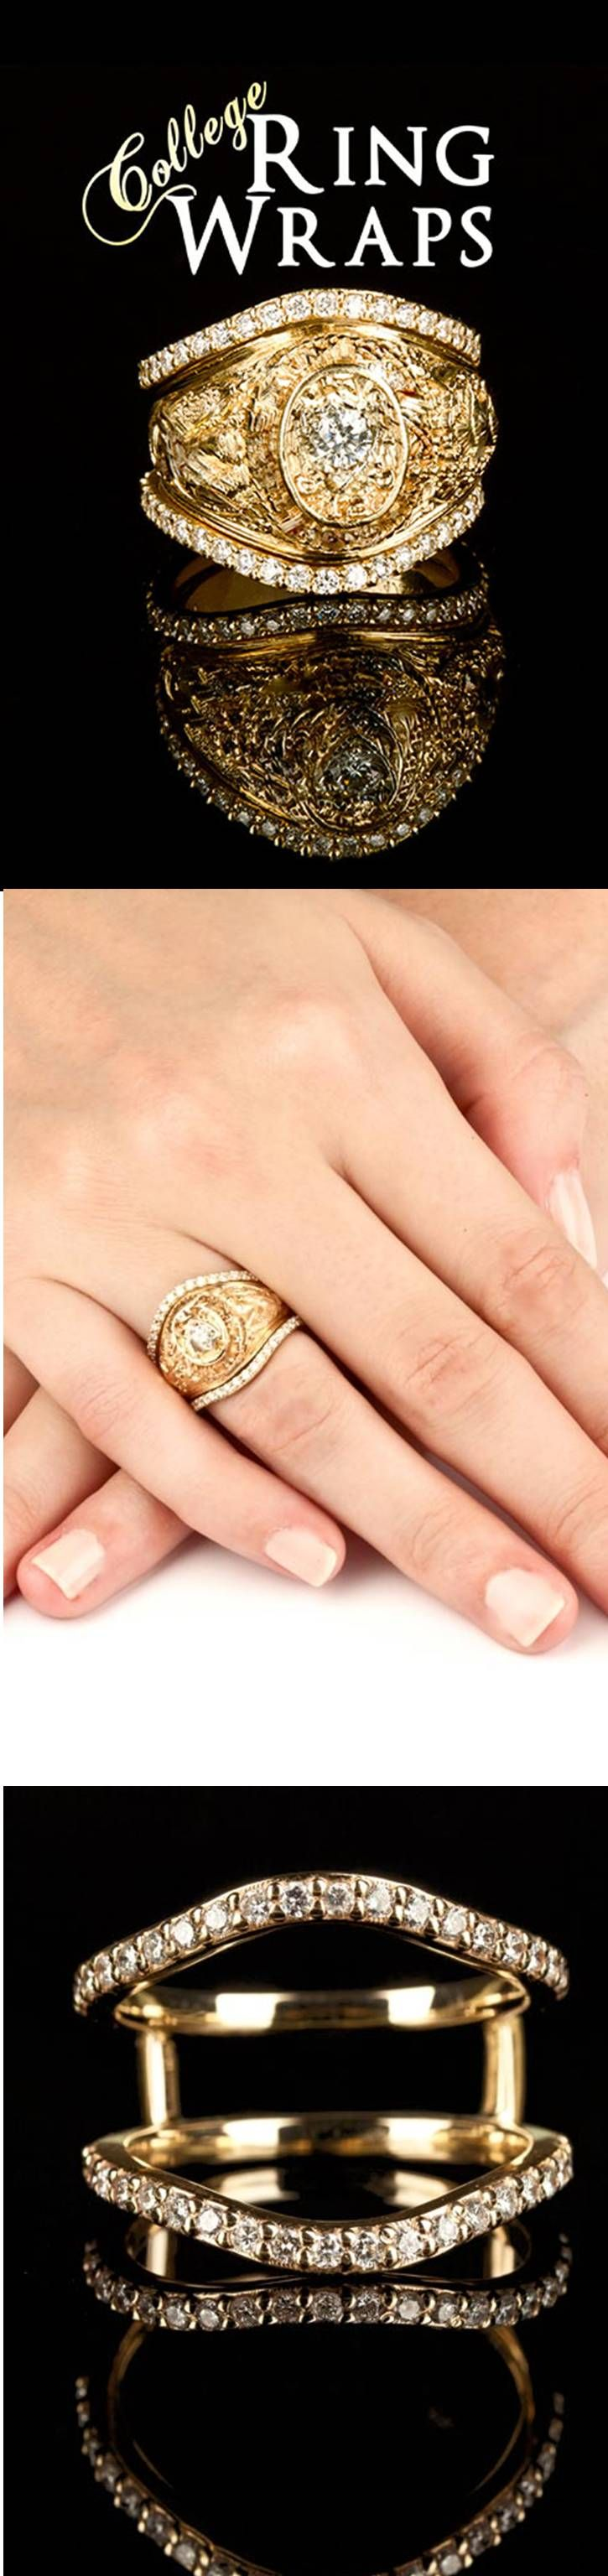 Diamond wrap for your Aggie ring!